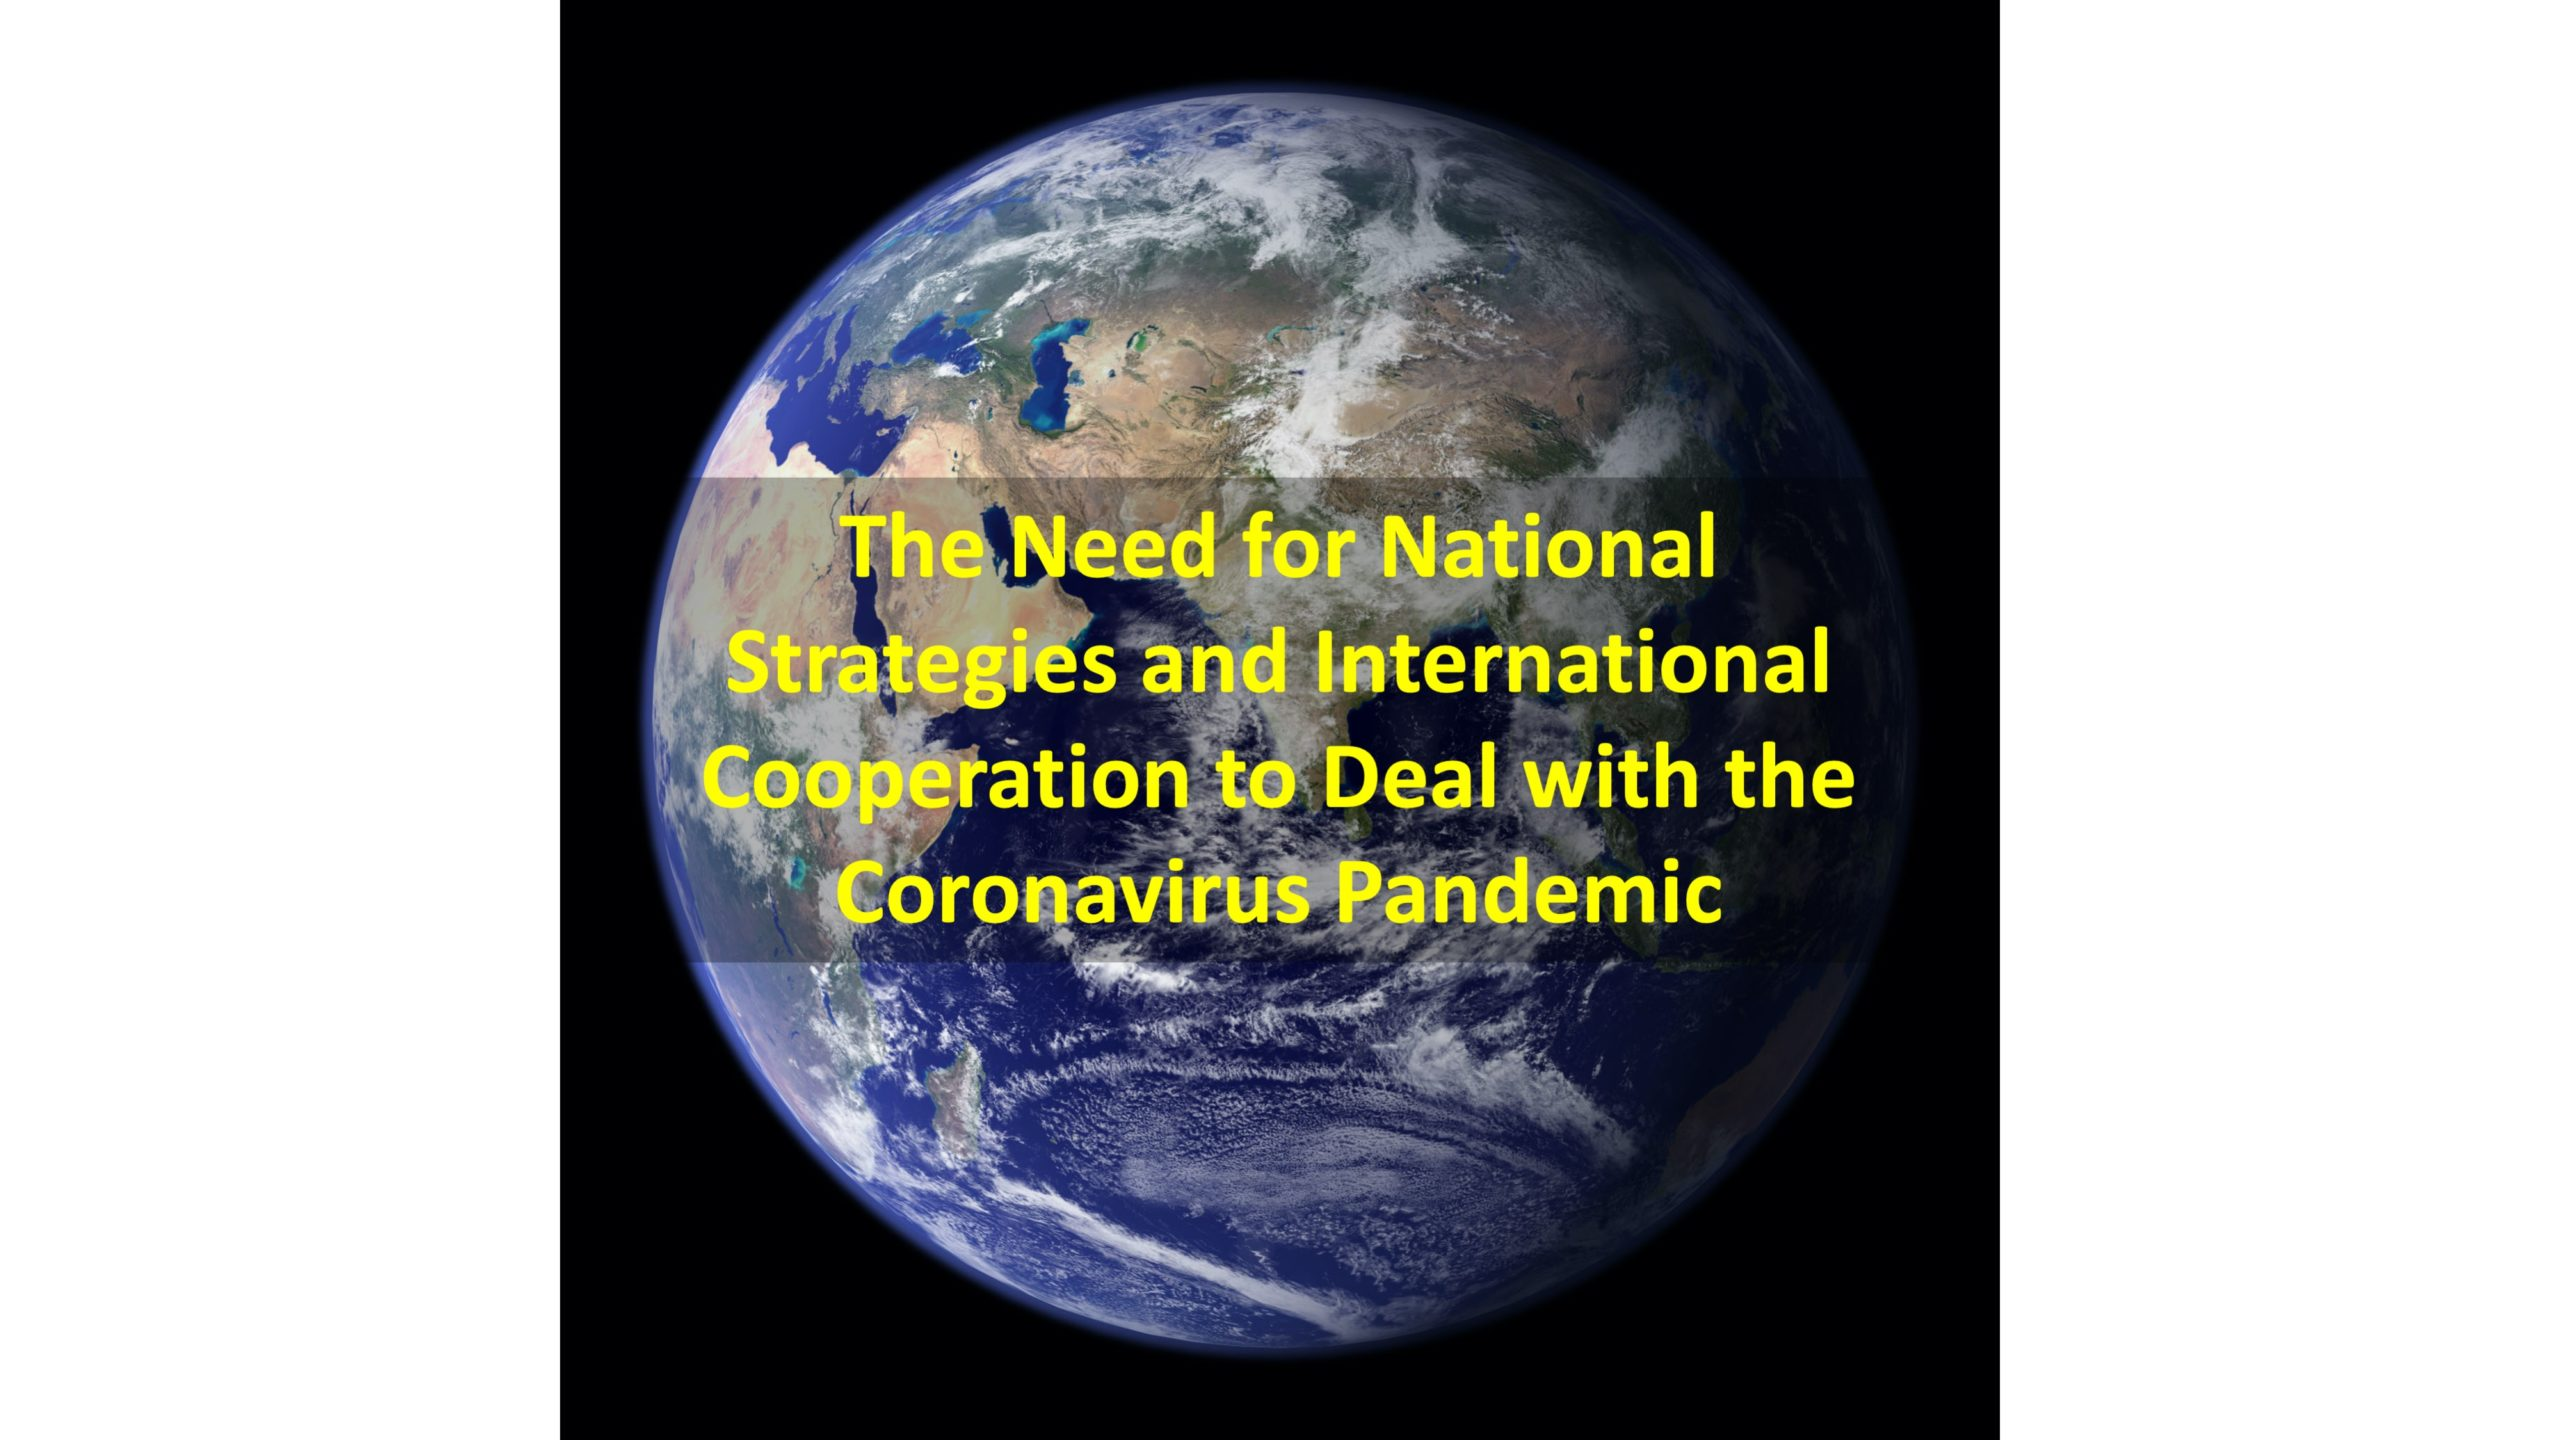 The Need for National Strategies and International Cooperation to Deal with the Coronavirus Pandemic